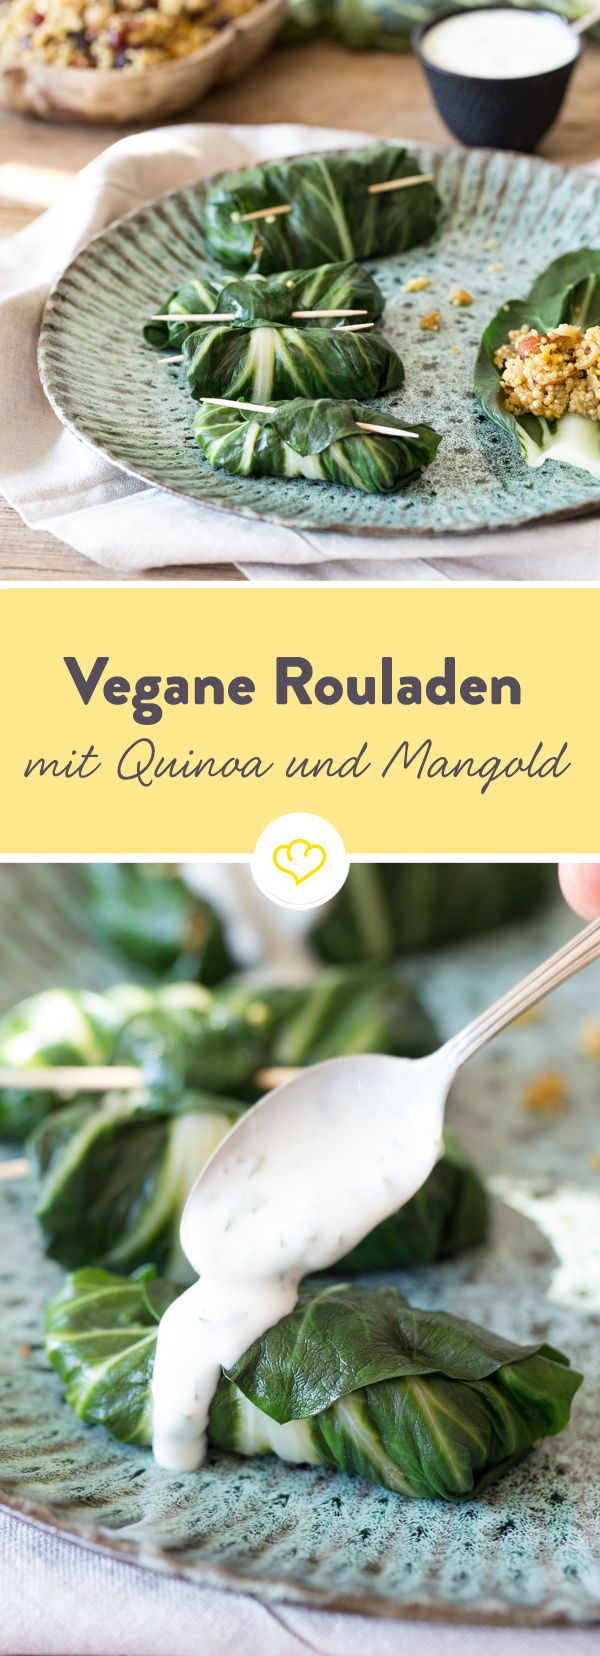 roulade rolls vegan mangoldroulade mit quinoa f llung rezept hauptgerichte vegan lecker. Black Bedroom Furniture Sets. Home Design Ideas